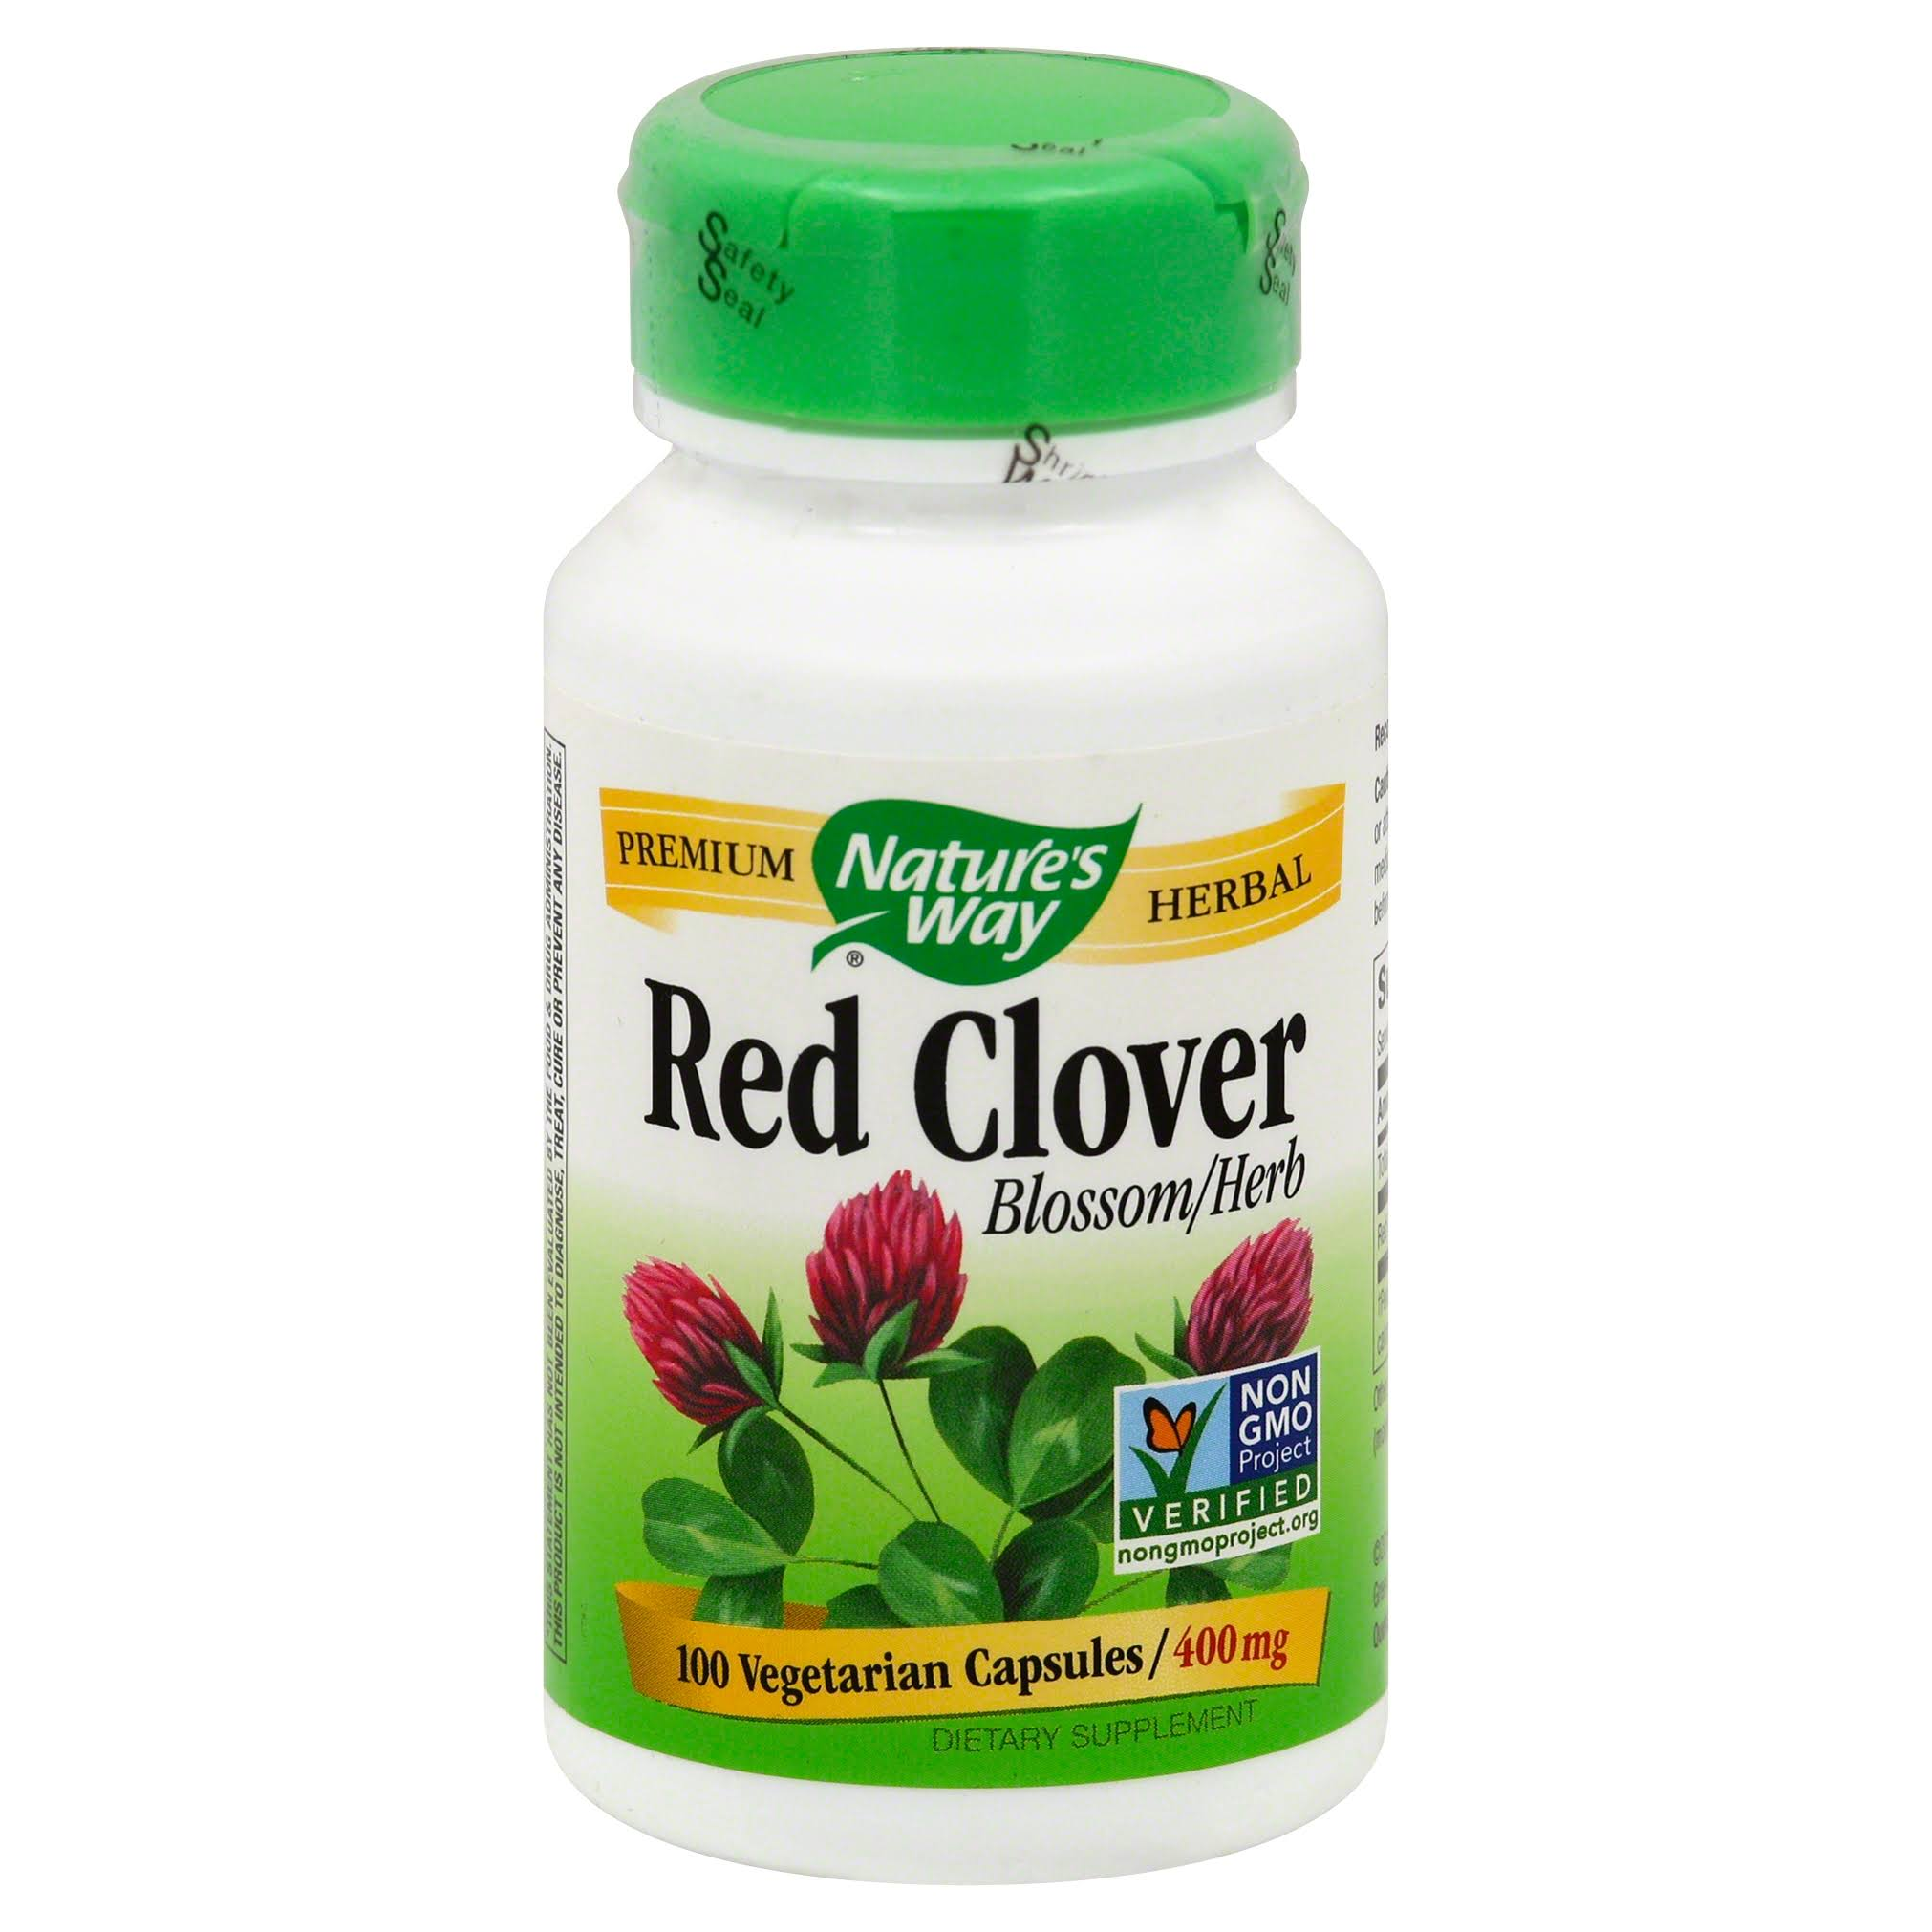 Nature's Way Red Clover Blossom And Herb - 100 Capsules, 400mg